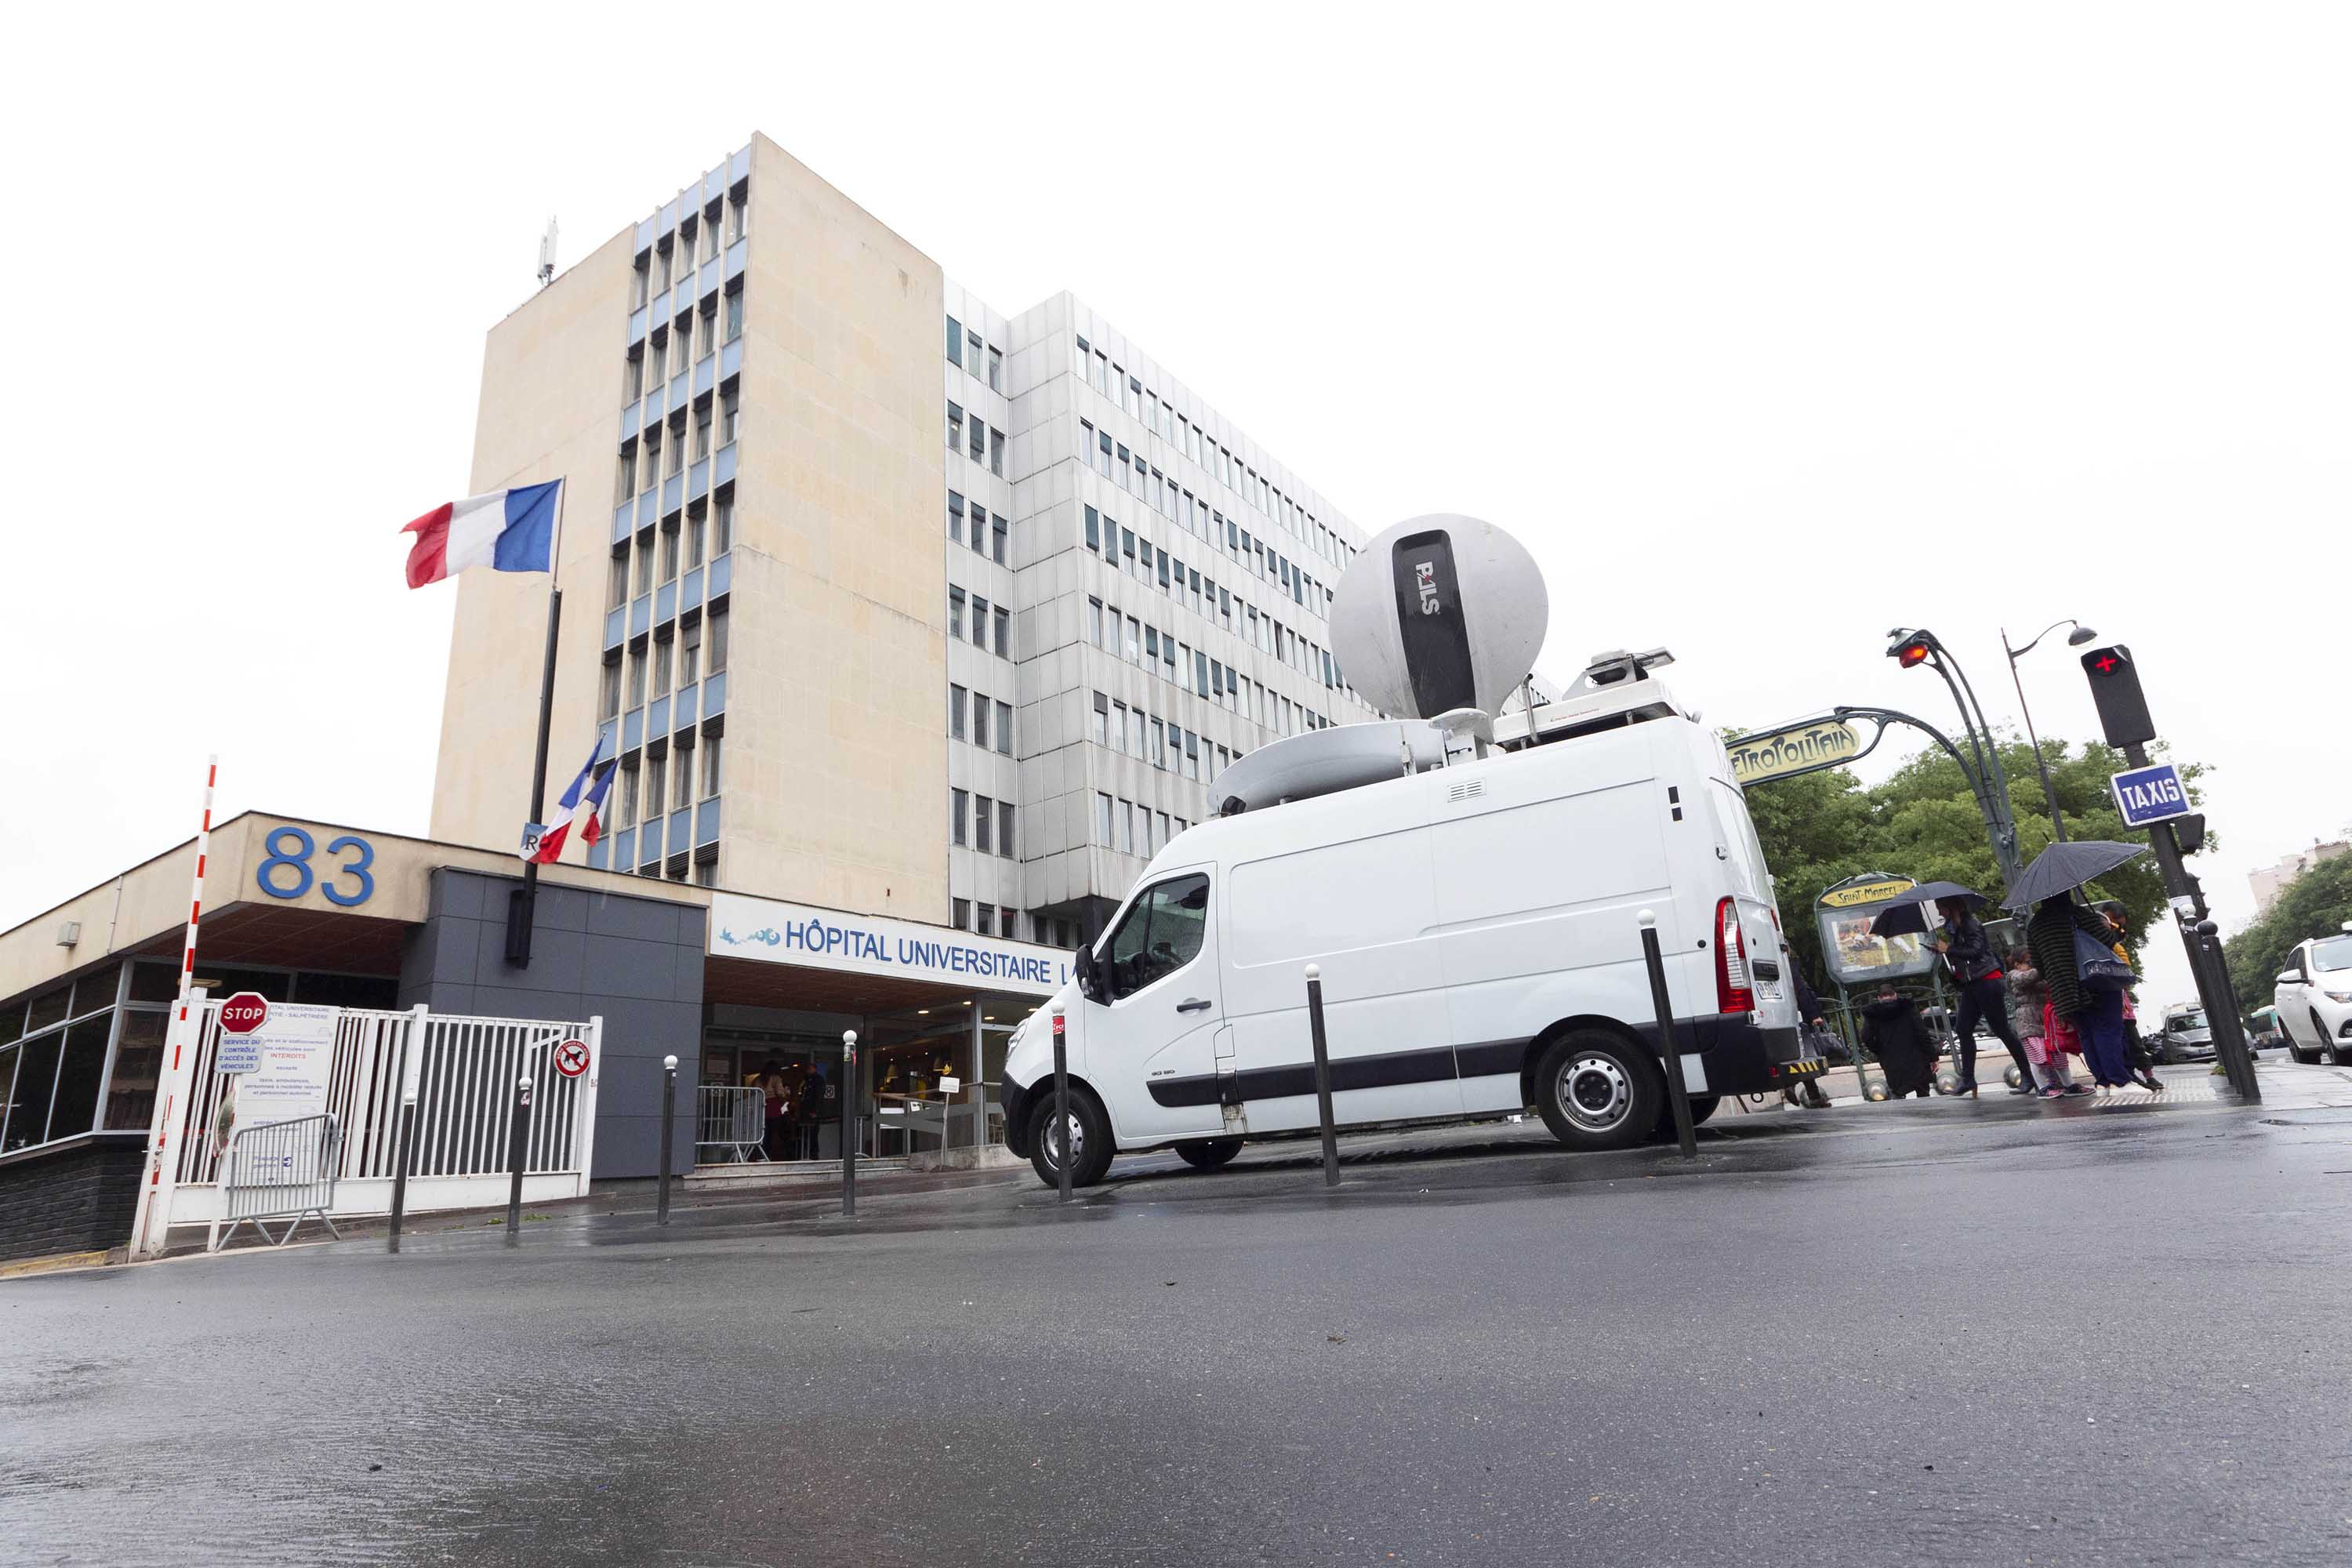 A view of the Pitie Salpetriere hospital in Paris on February 5.